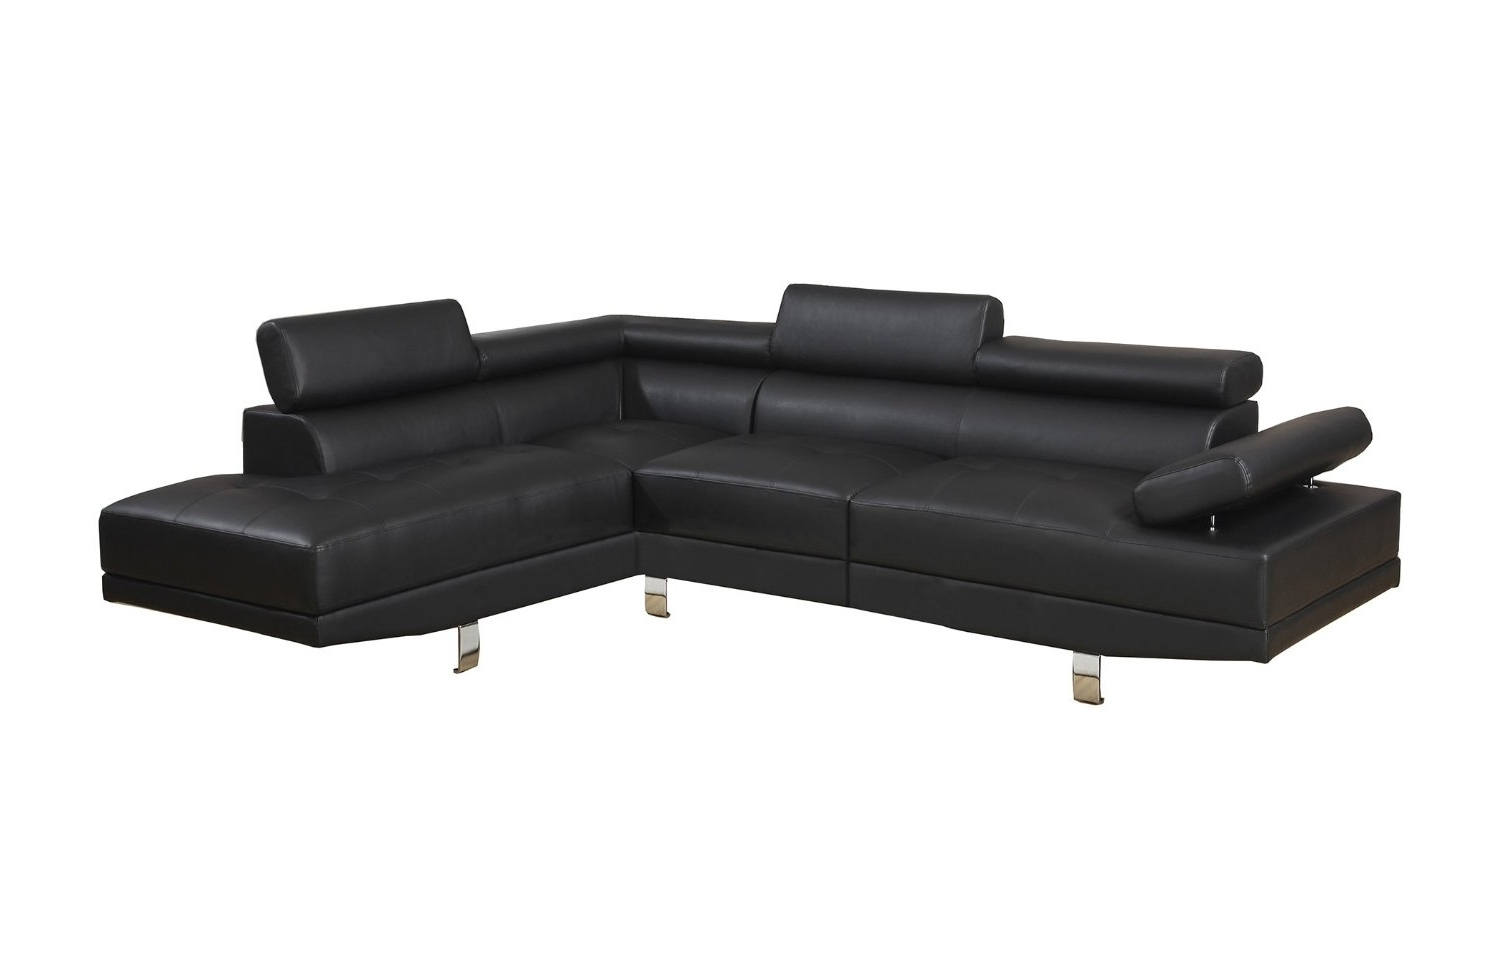 Best And Newest Sectional Sofas Amazon – Hotelsbacau Regarding Sectional Sofas At Amazon (View 4 of 15)